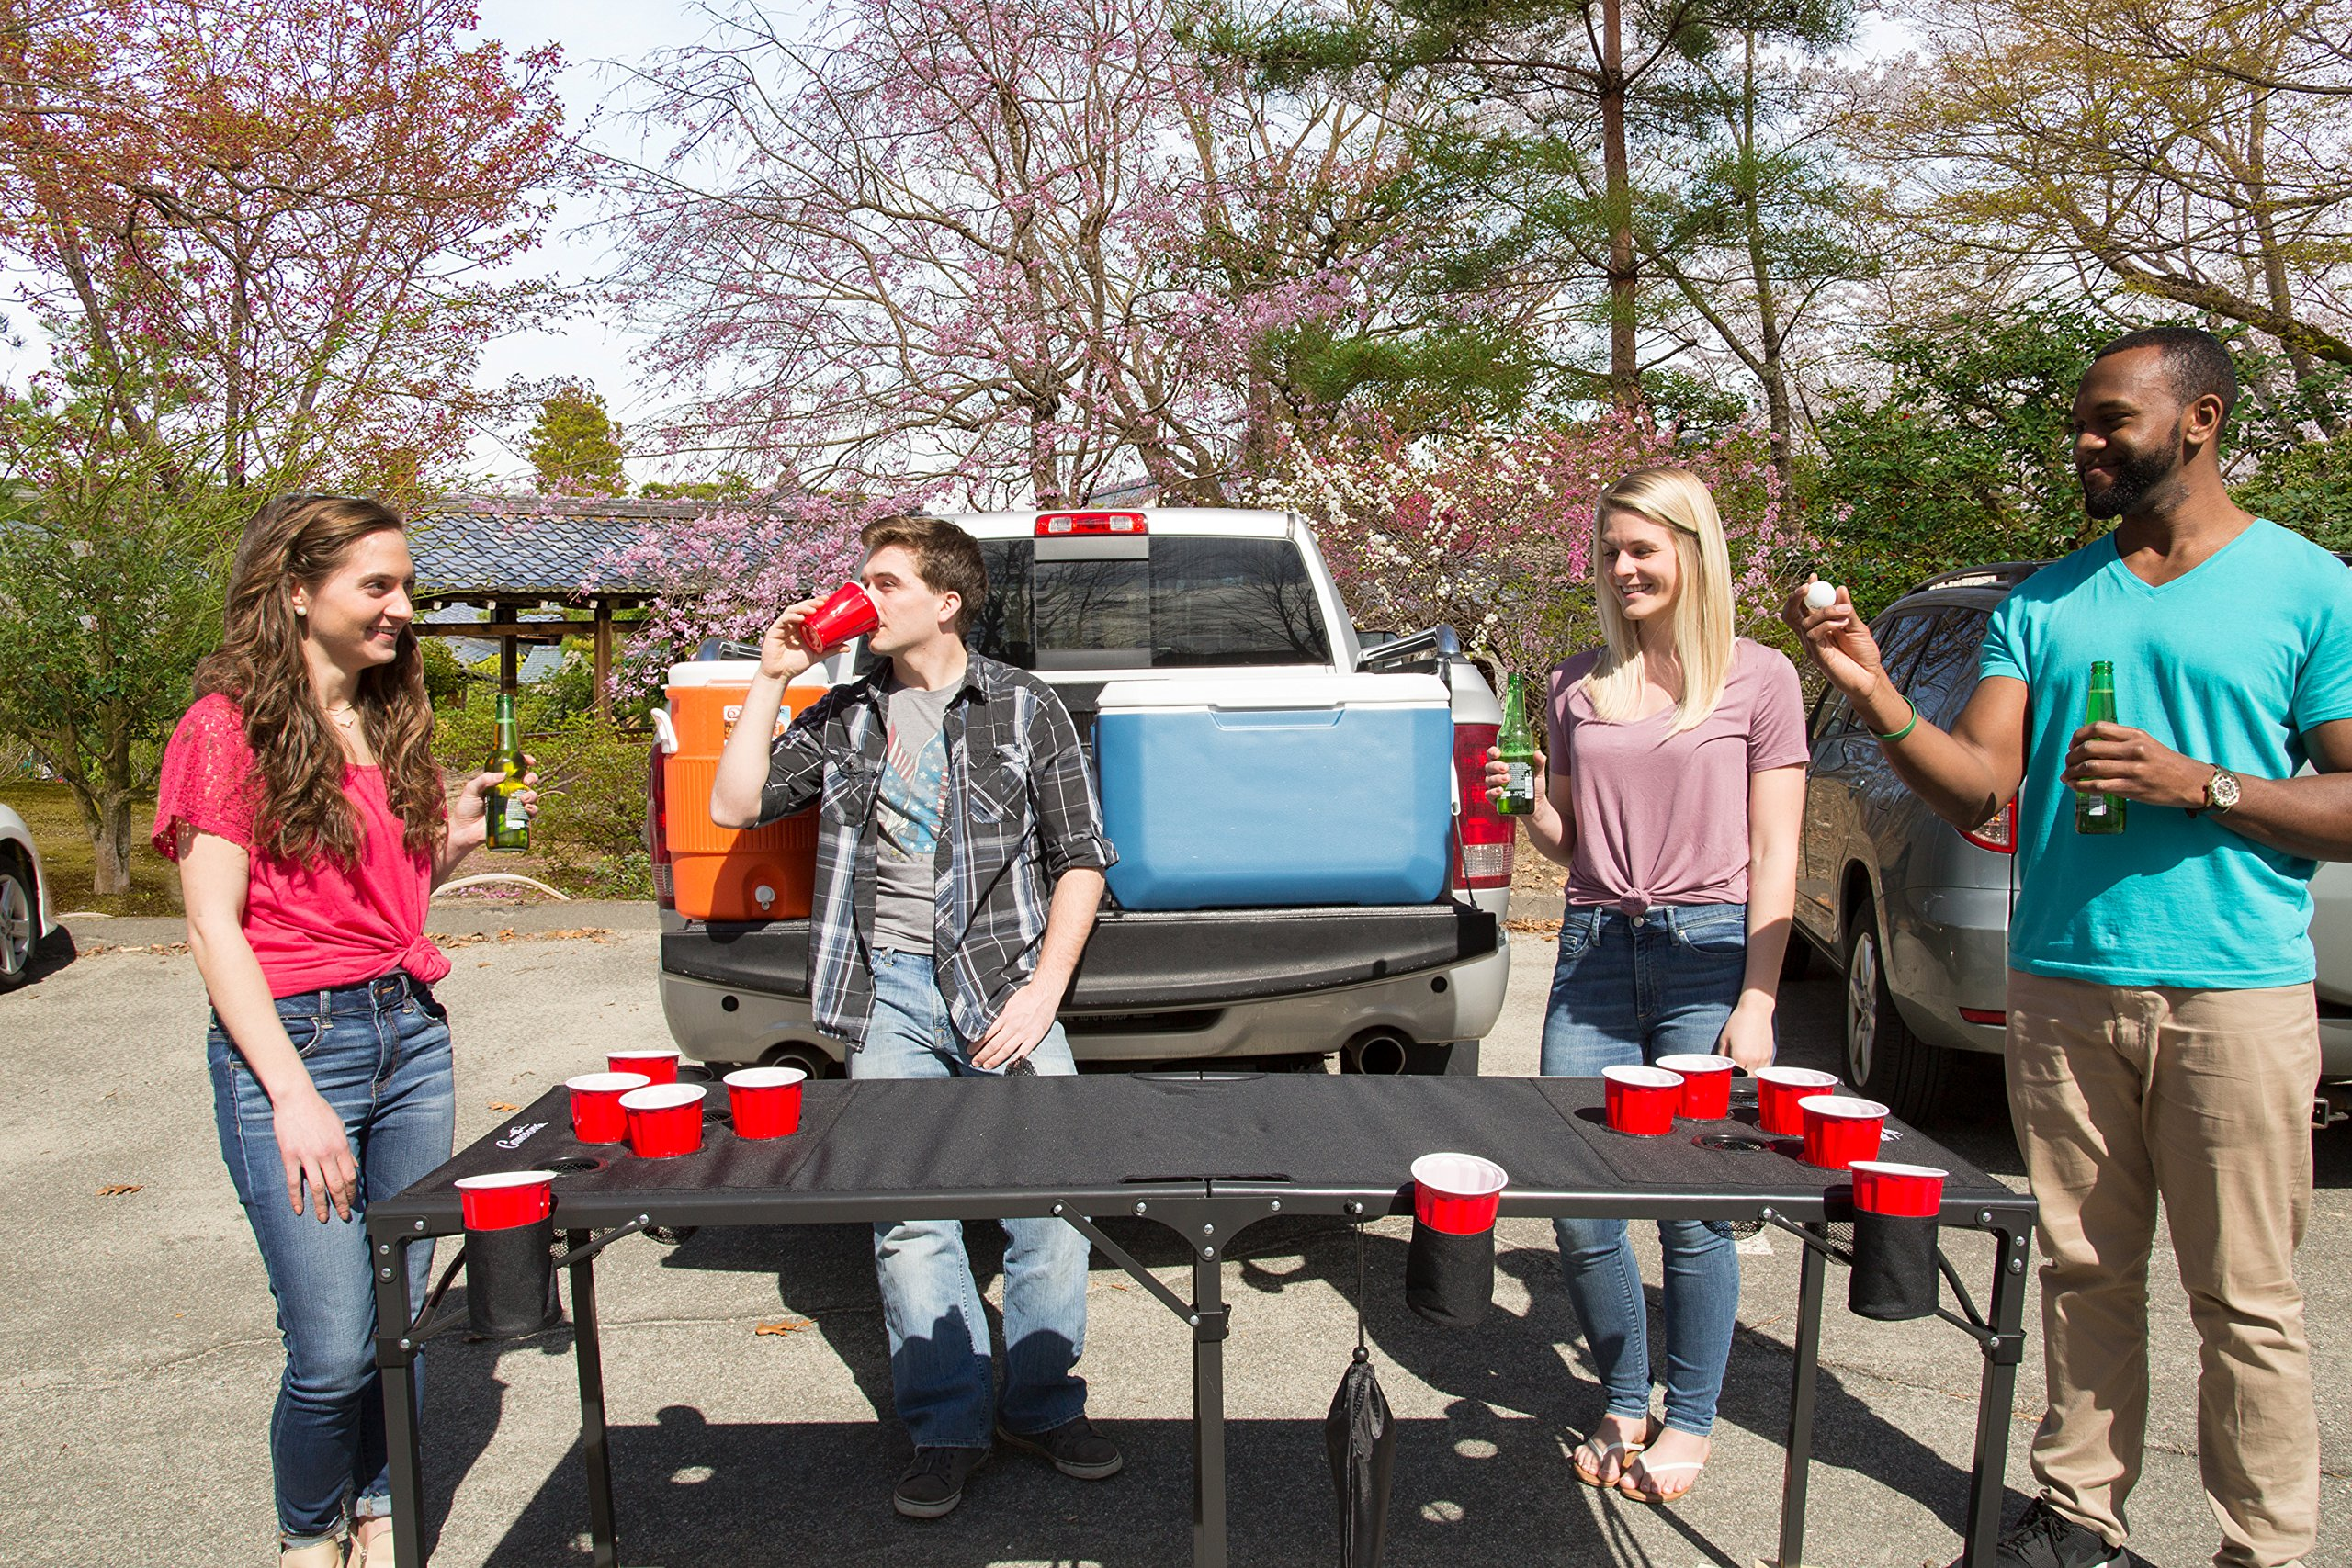 Camerons Portable Beer Pong Table- Collapsible Regulation Size Beirut Table w Cup Holders, 6 Balls, Stakes and Travel Bag by Camerons (Image #4)